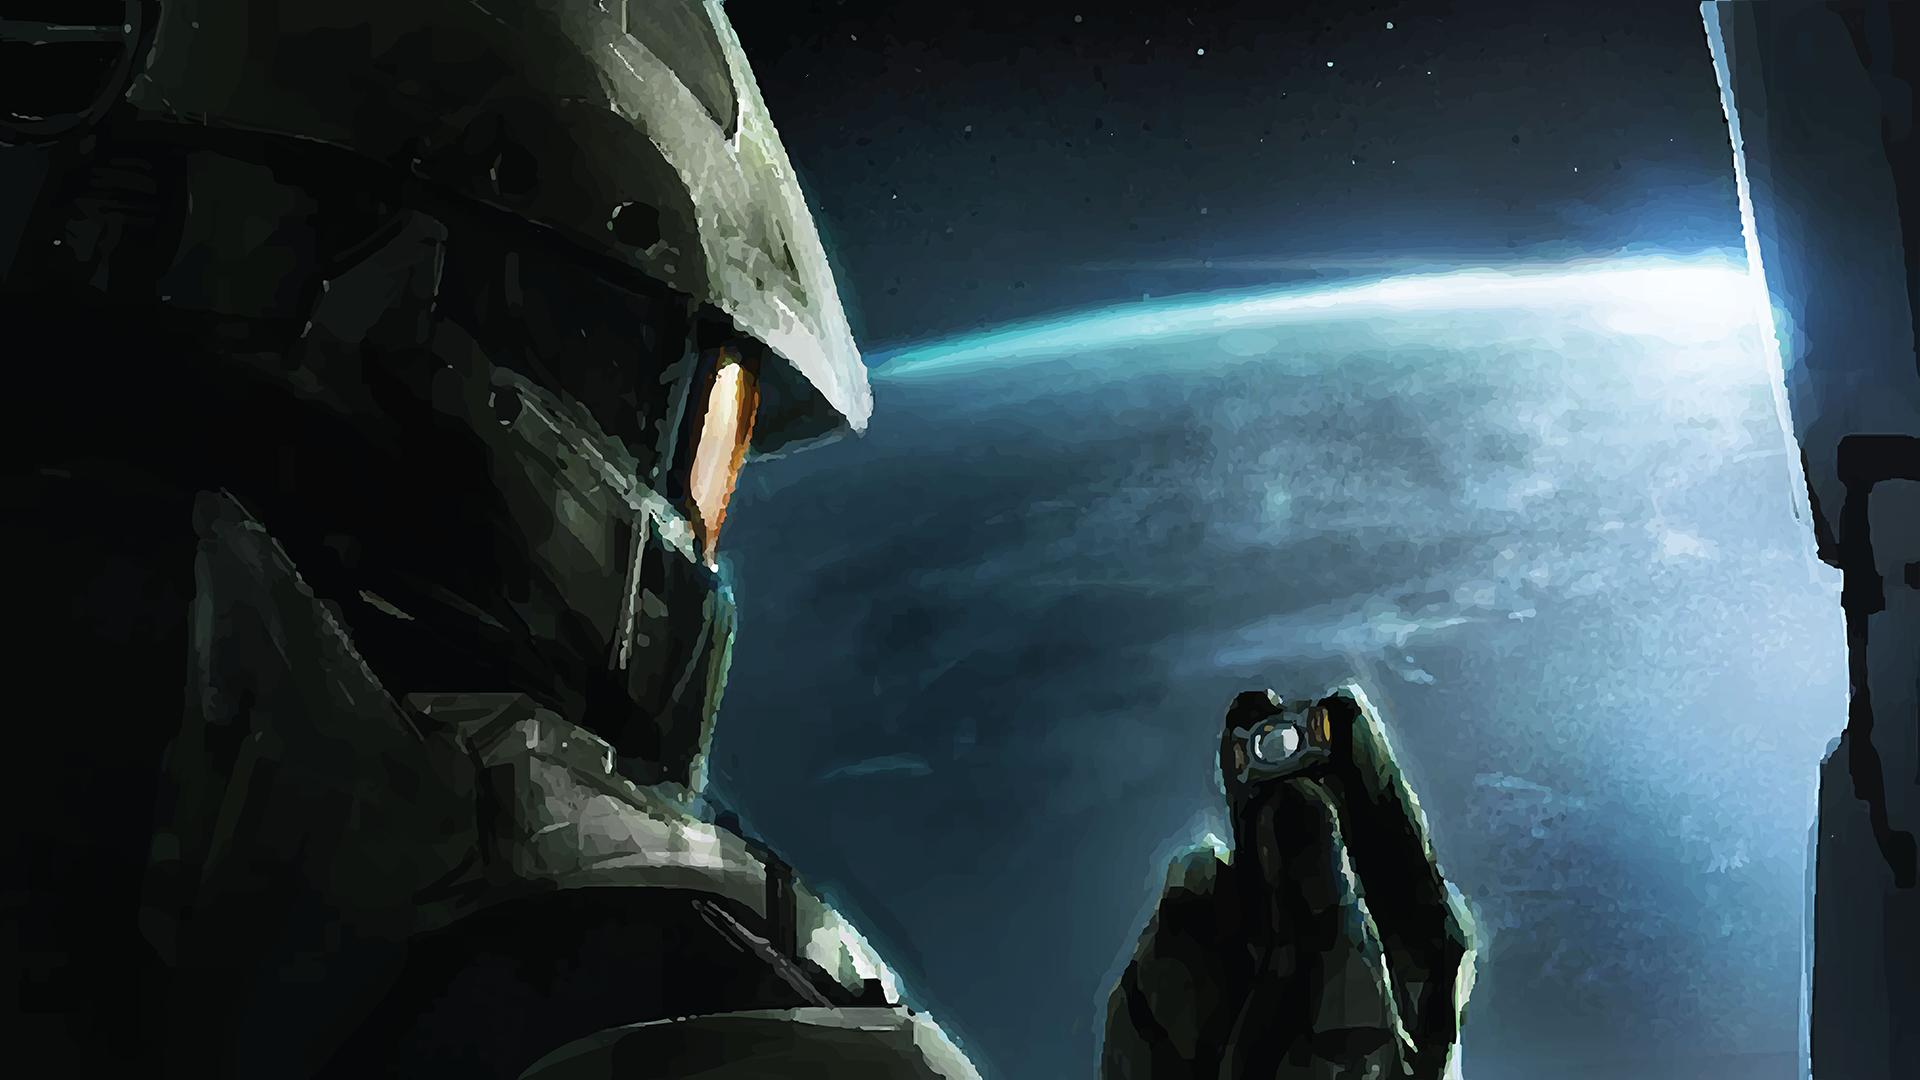 Halo 5 Wallpaper 1920x1080 rhalo [1920x1080] 1920x1080